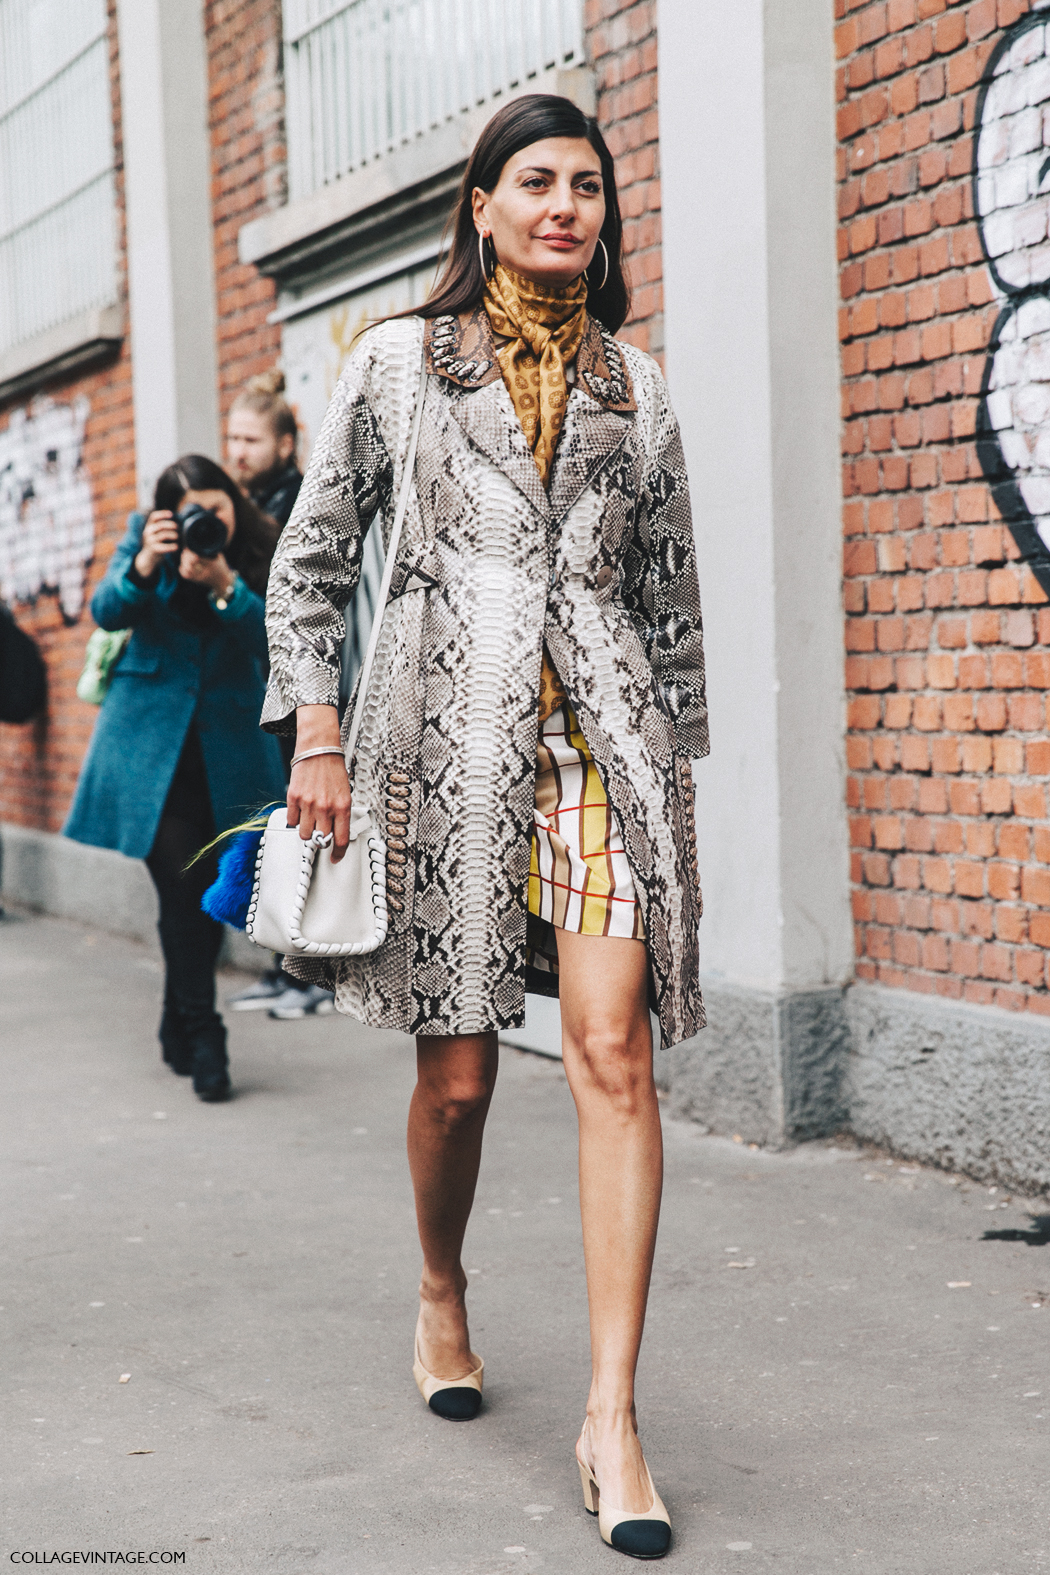 Milan_Fashion_Week_Fall_16-MFW-Street_Style-Collage_Vintage-Giovanna_Battaglia-Snake_Coat-Chanel_SlingBack_Shoes-Hoop_Earrings-Fendi-1